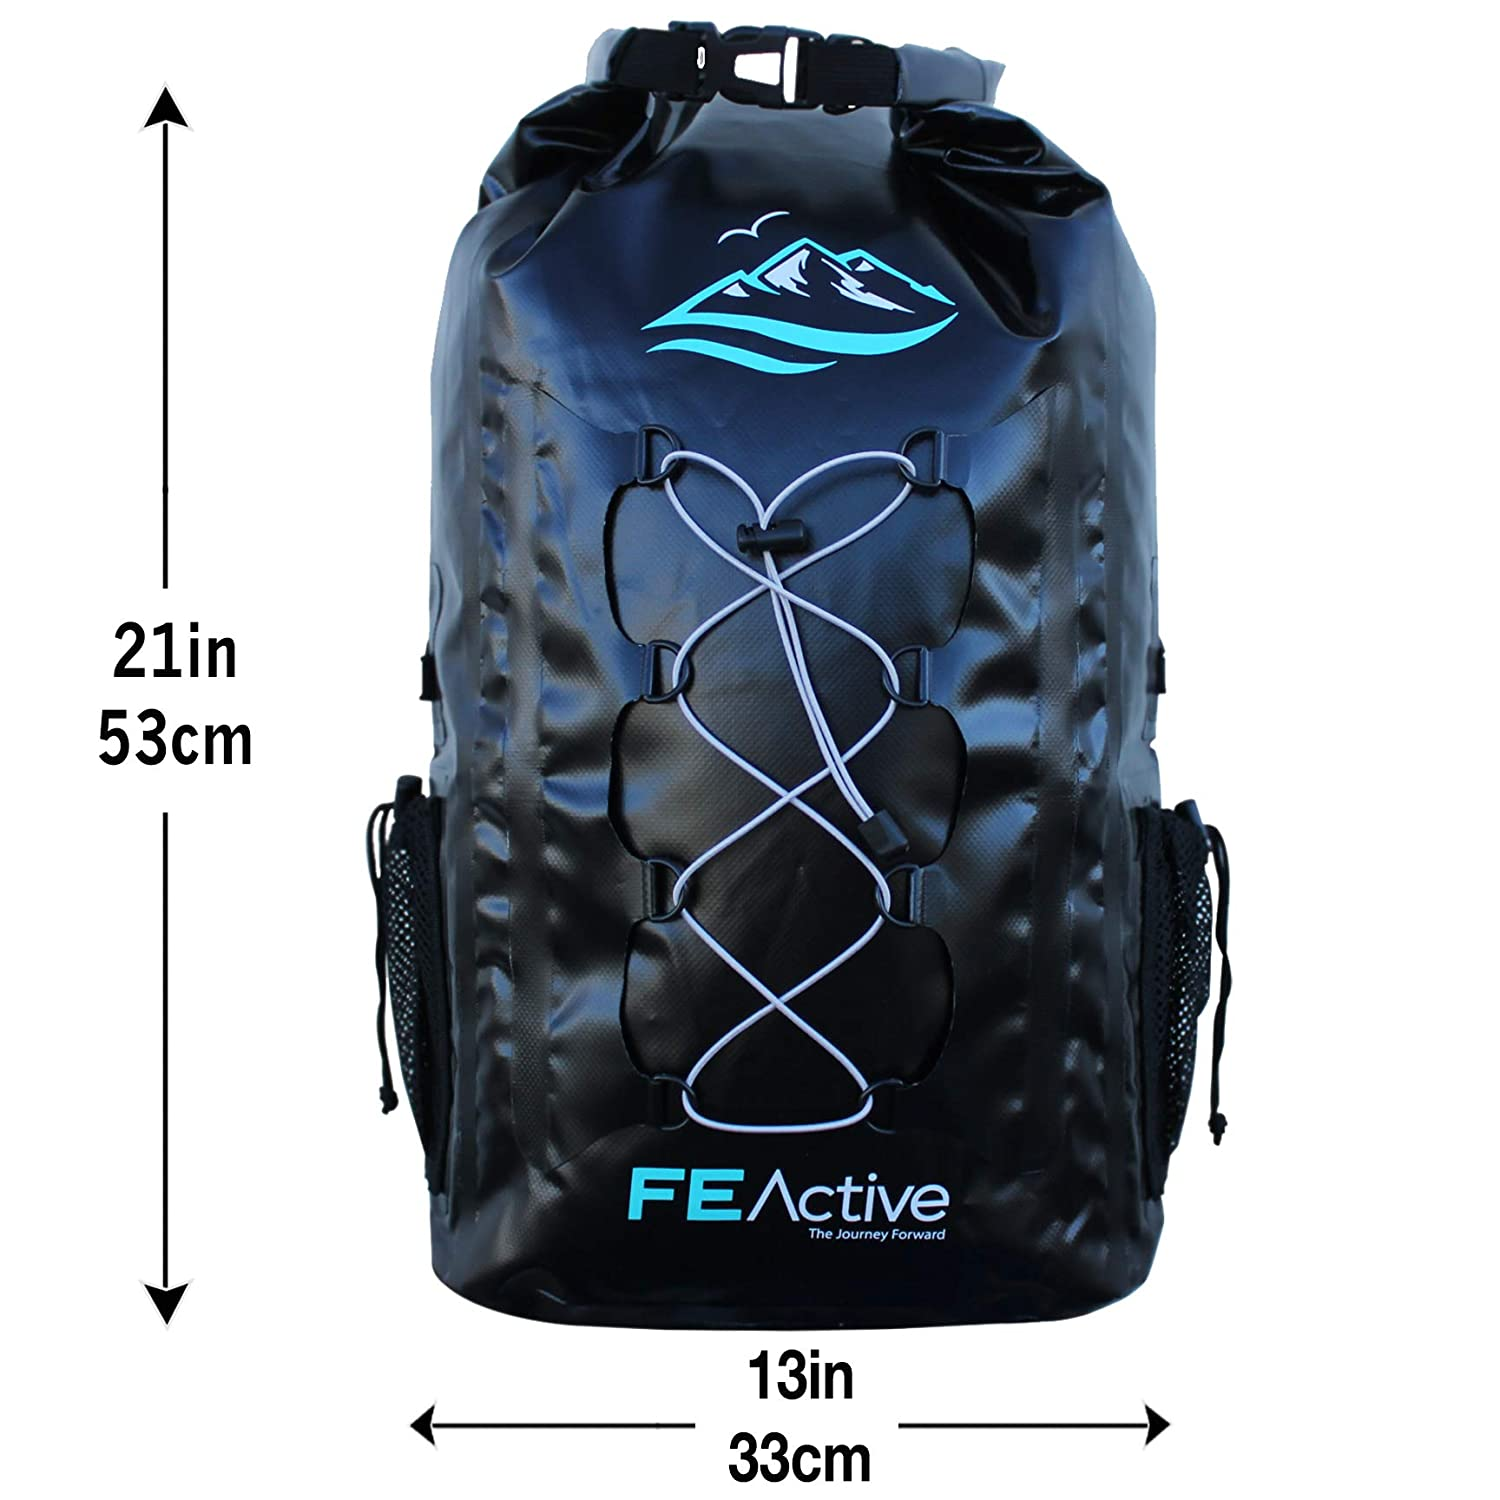 912b015eadf9 FE Active - 30L Eco Friendly Waterproof Dry Bag Backpack Great for All  Outdoor and Water Related Activities. Padded Shoulder Straps